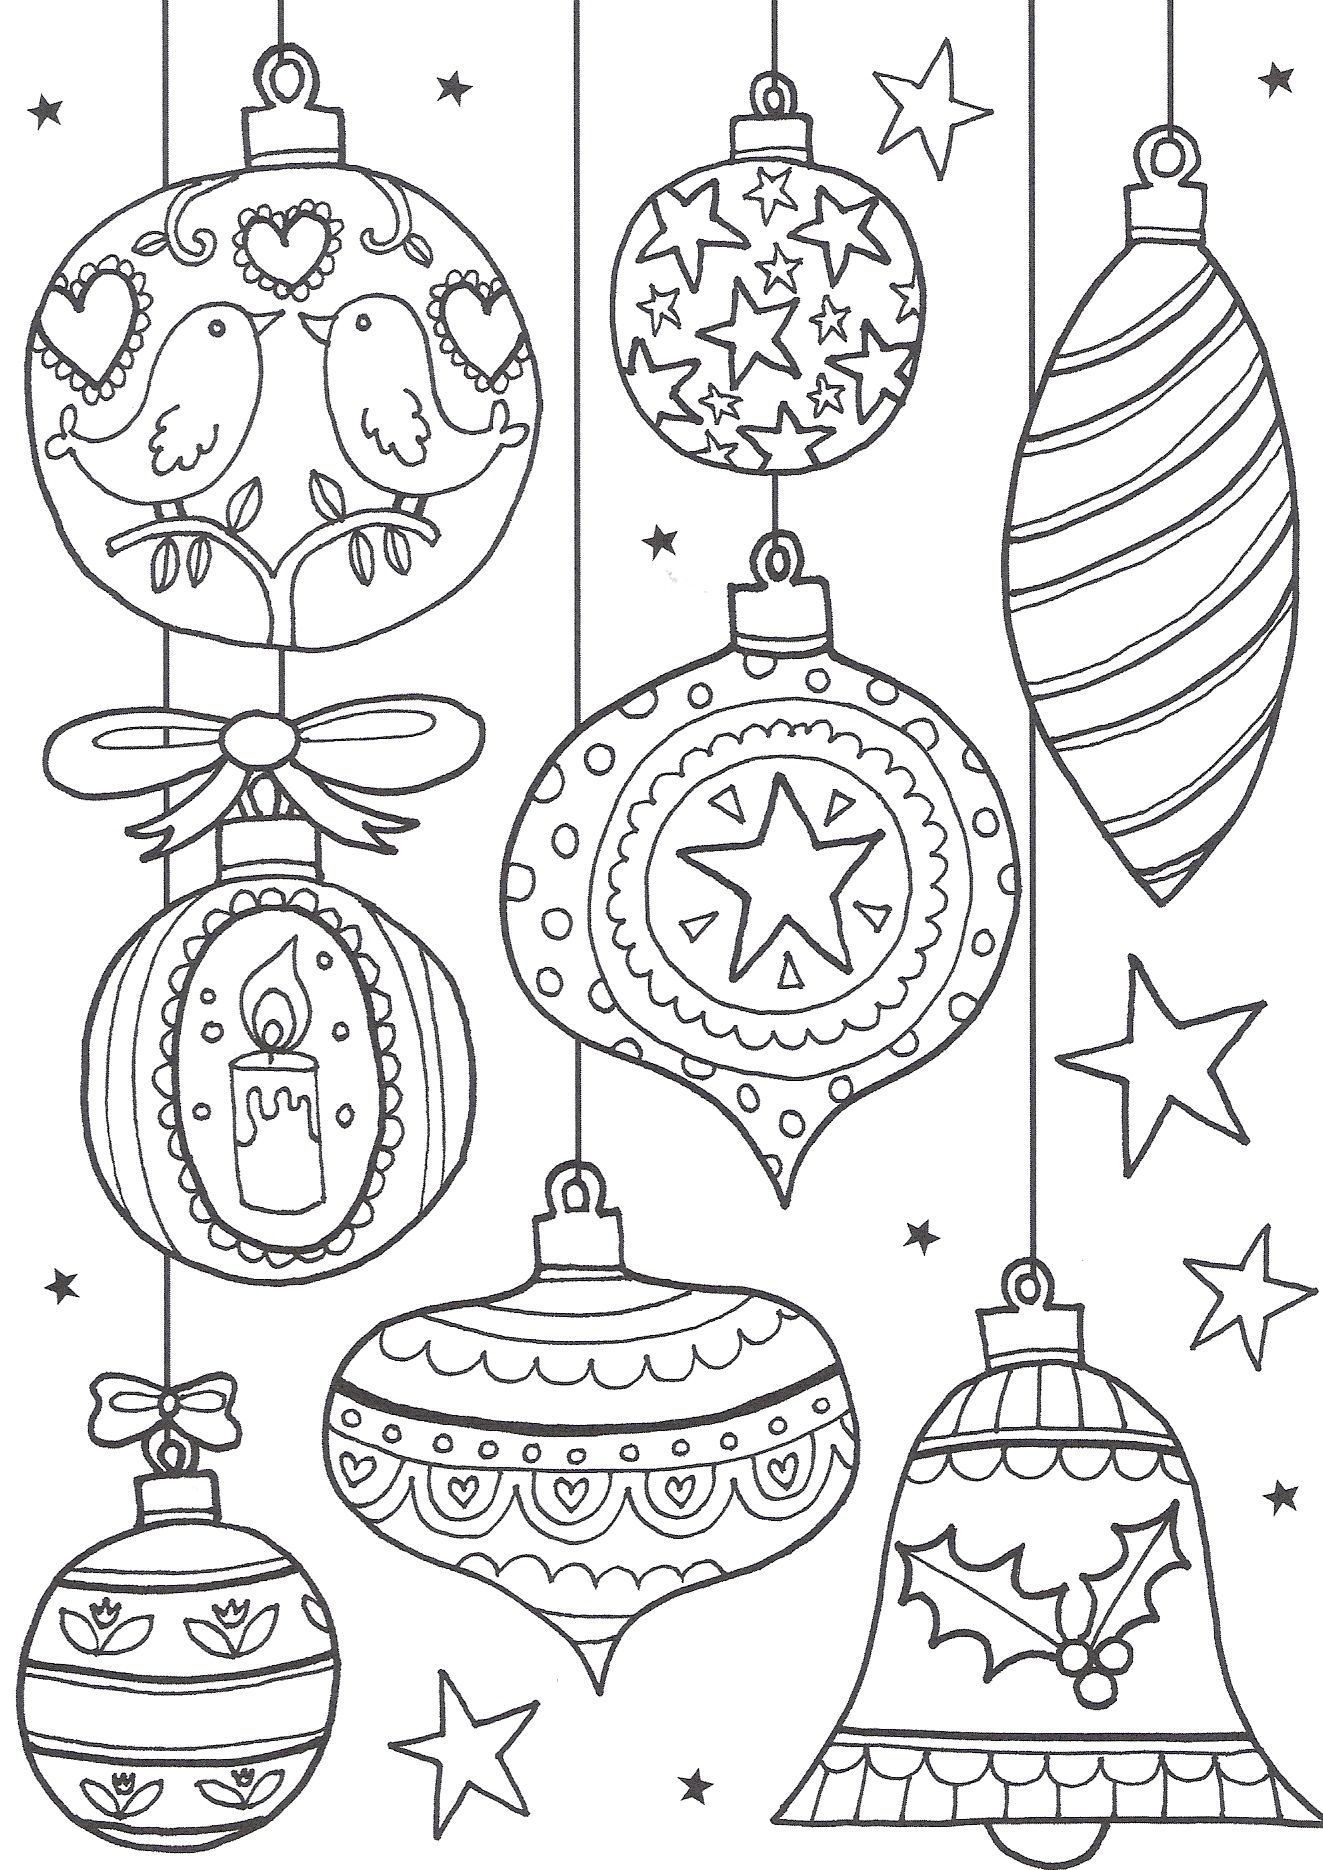 Free Christmas Coloring Pages With Colouring For Adults The Ultimate Roundup